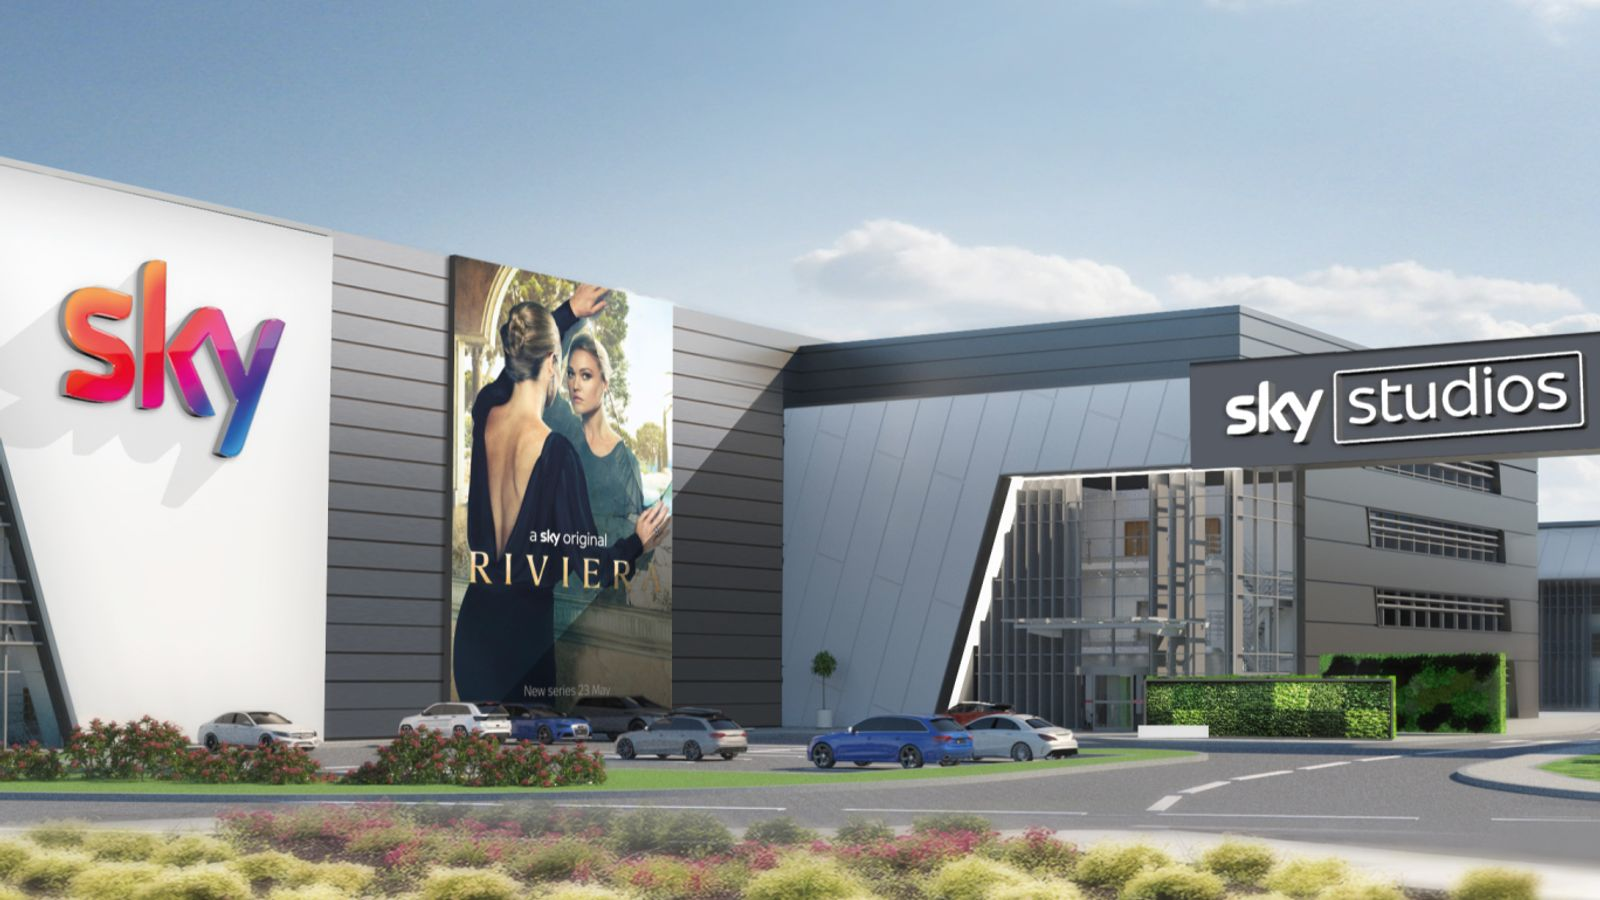 Sky Studios Elstree development to create 2,000 jobs